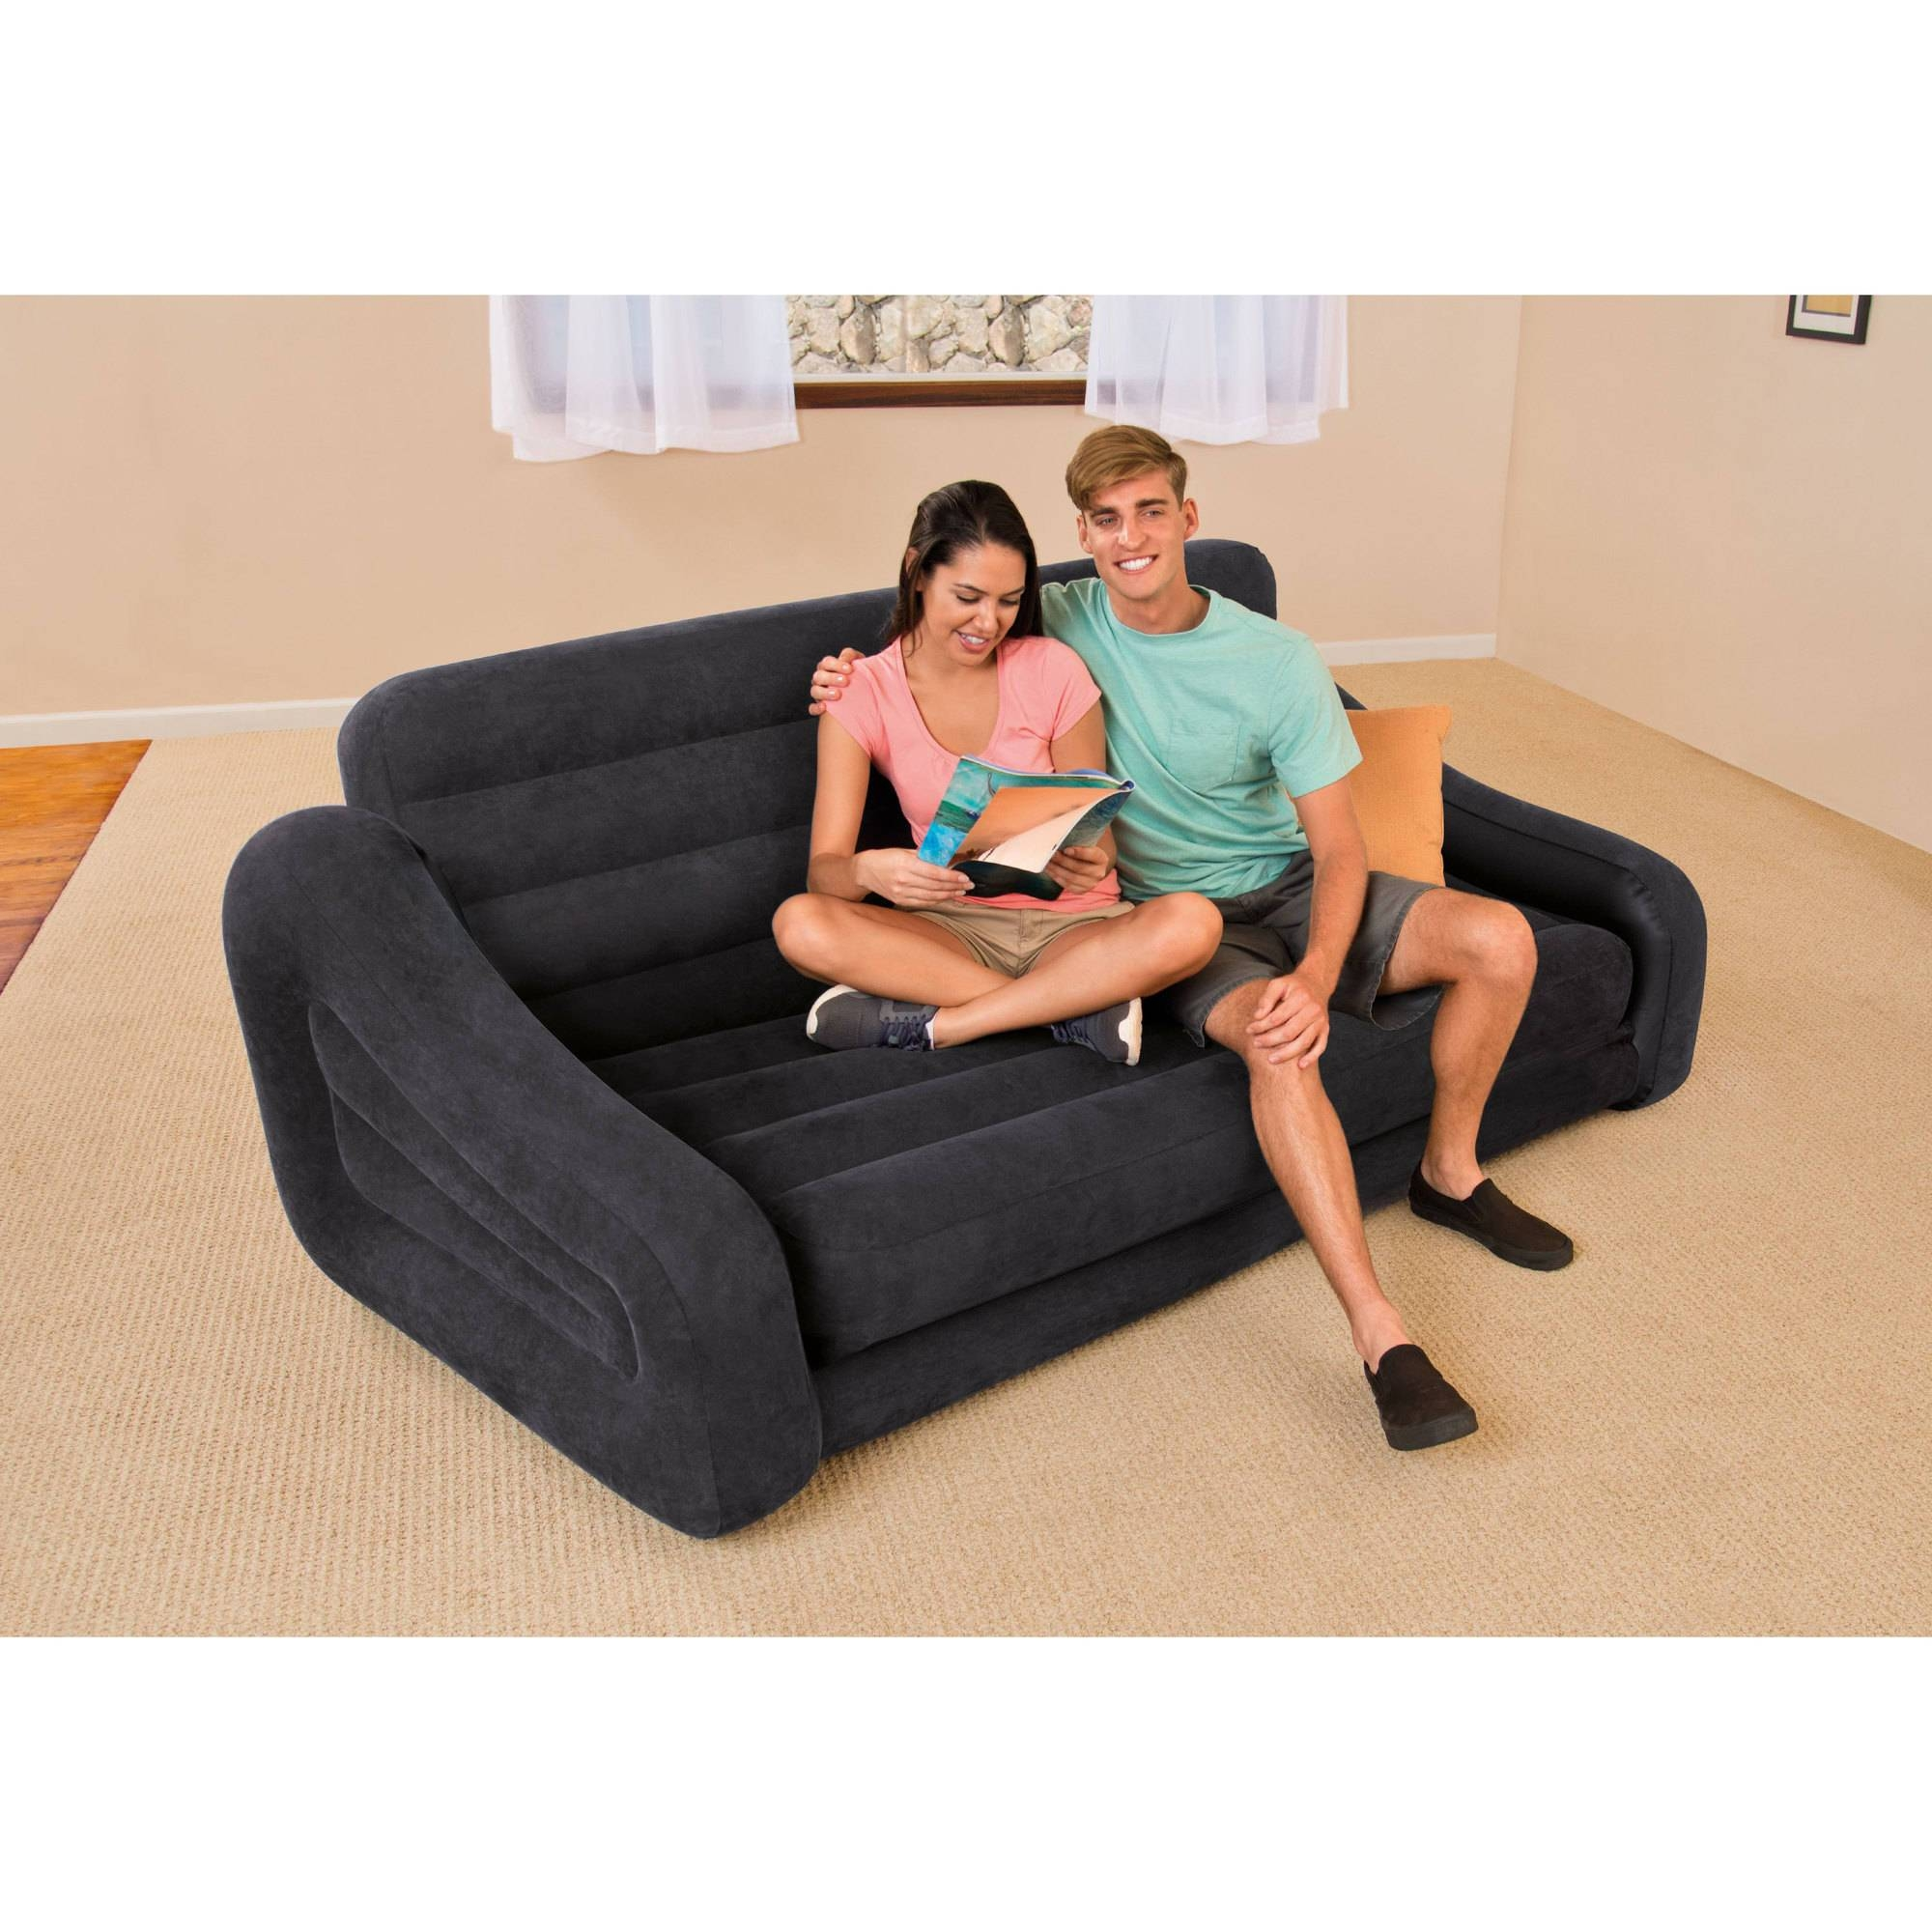 Intex Queen Inflatable Pull Out Sofa Bed - Walmart inside Pull Out Queen Size Bed Sofas (Image 11 of 30)